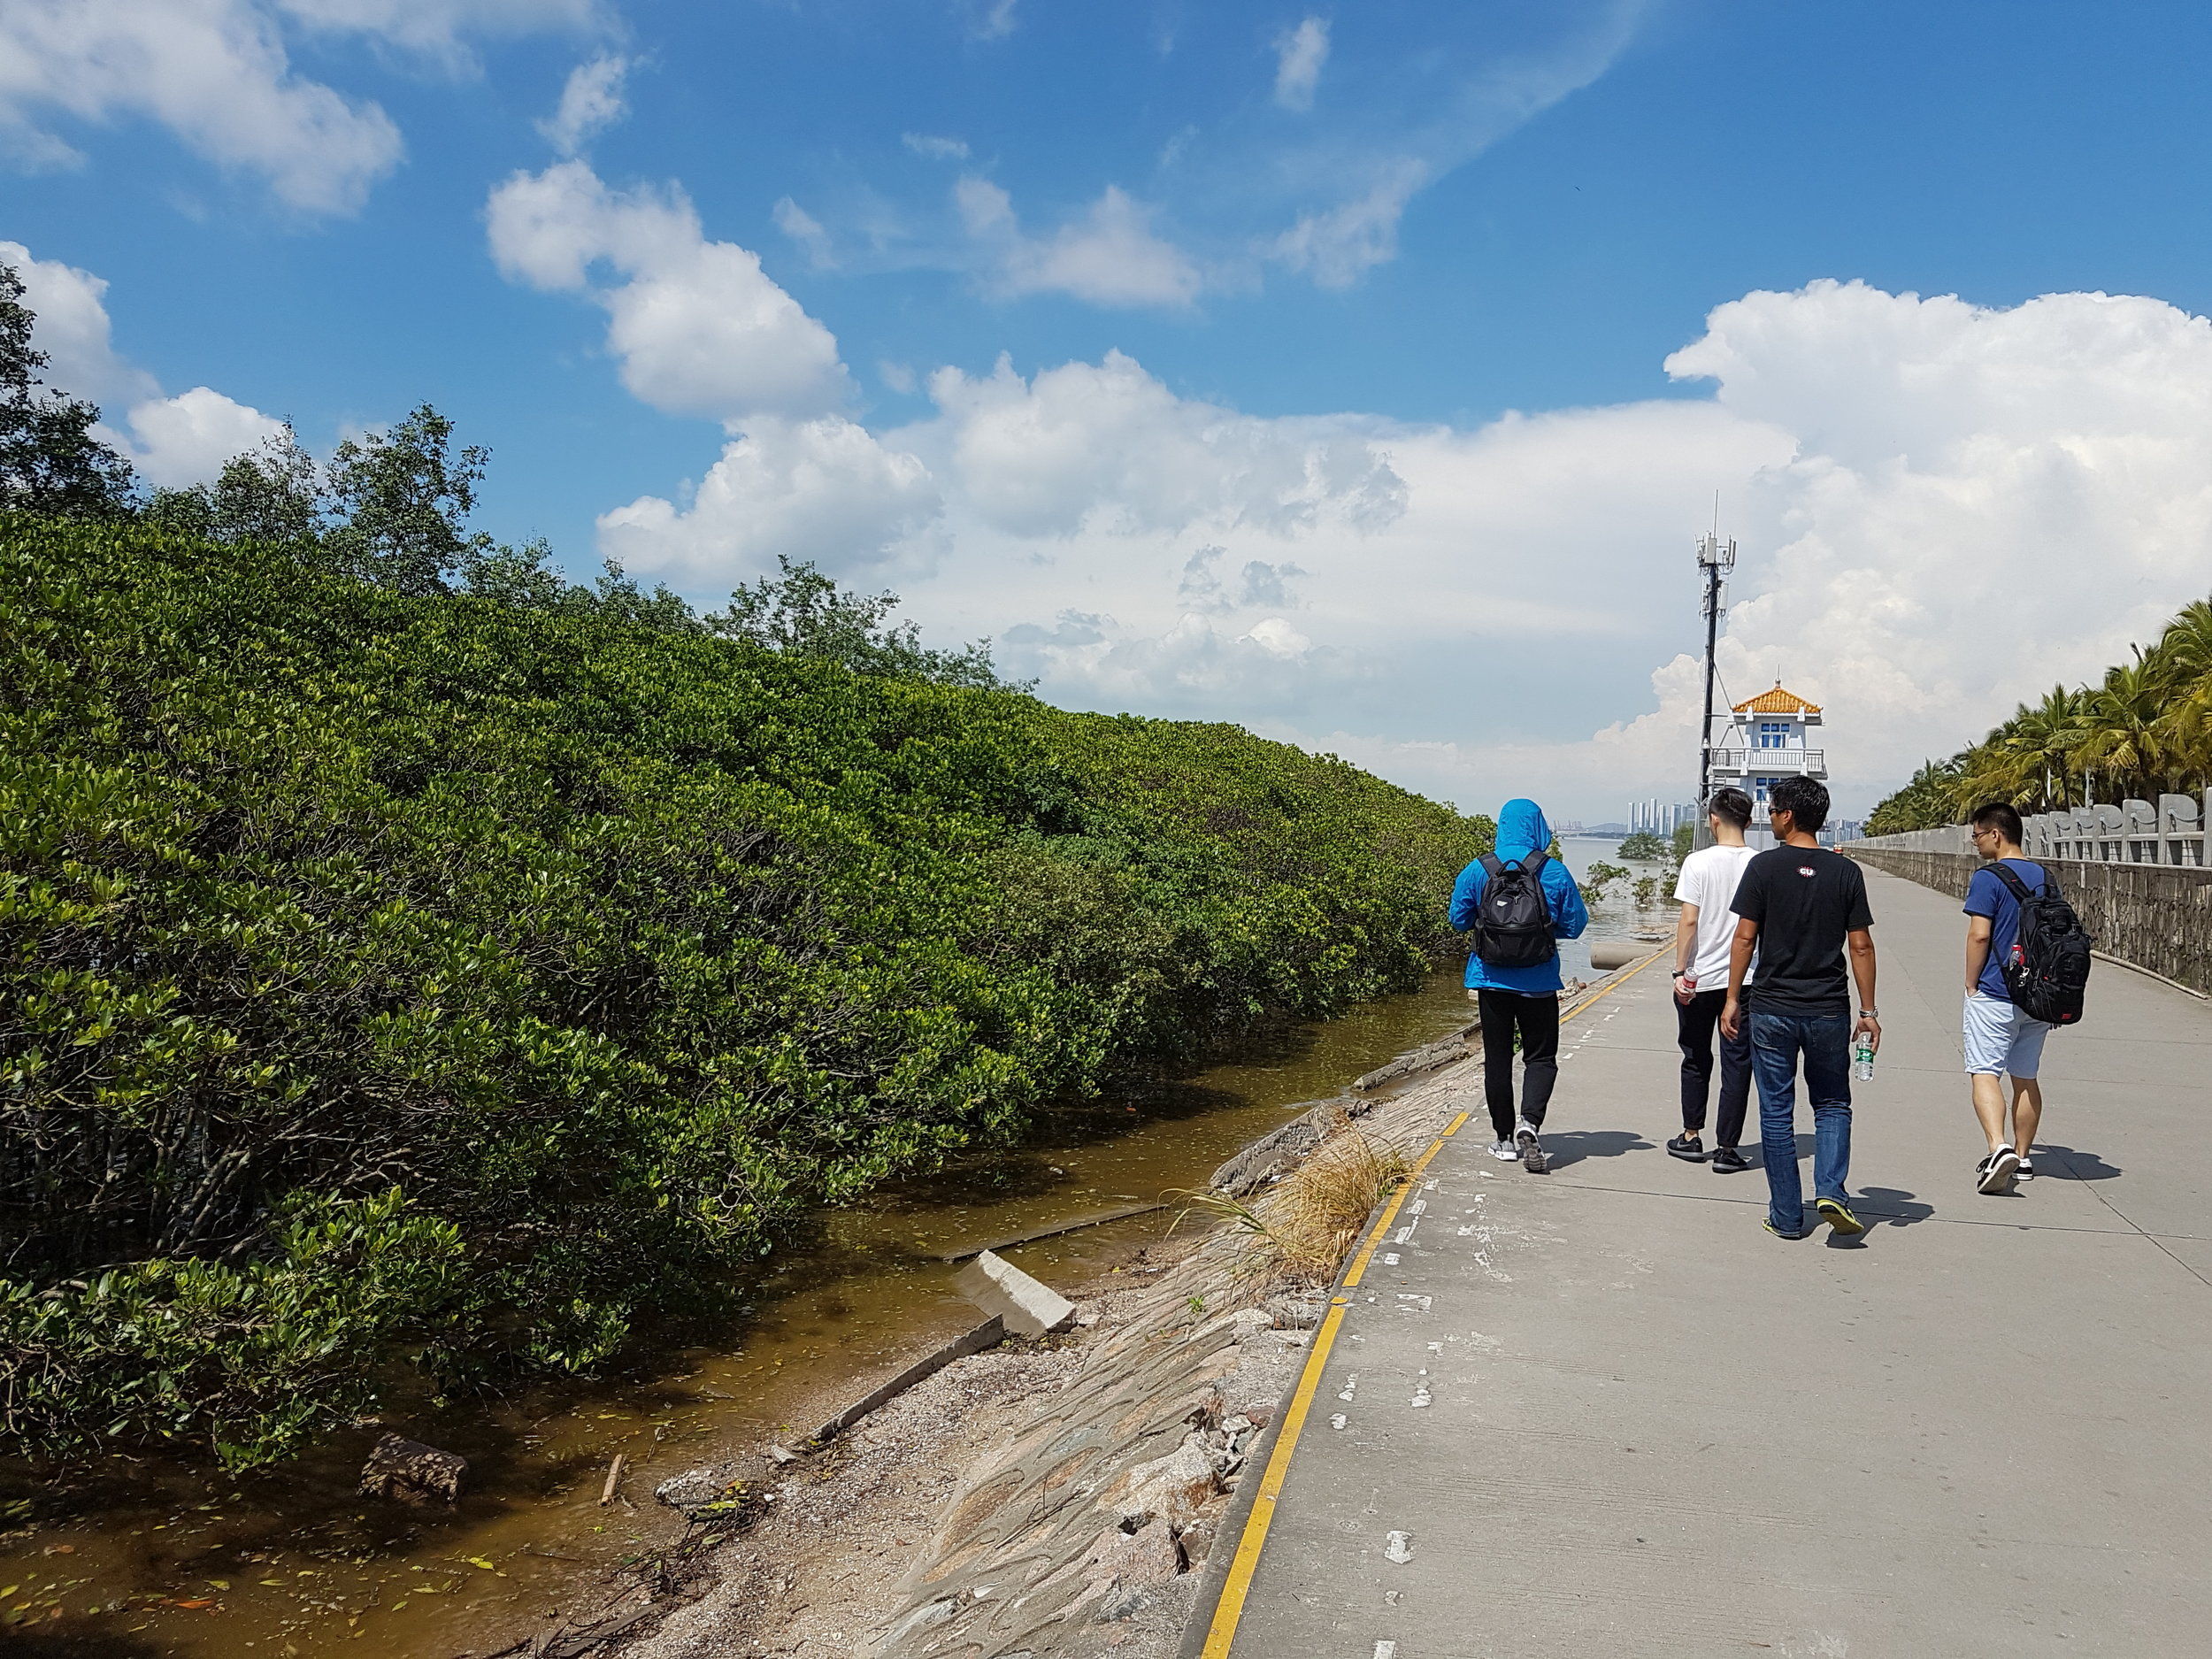 The coastal squeeze is a global problem for mangroves, with artificial structures such as this walkway preventing landward migration with rising sea level